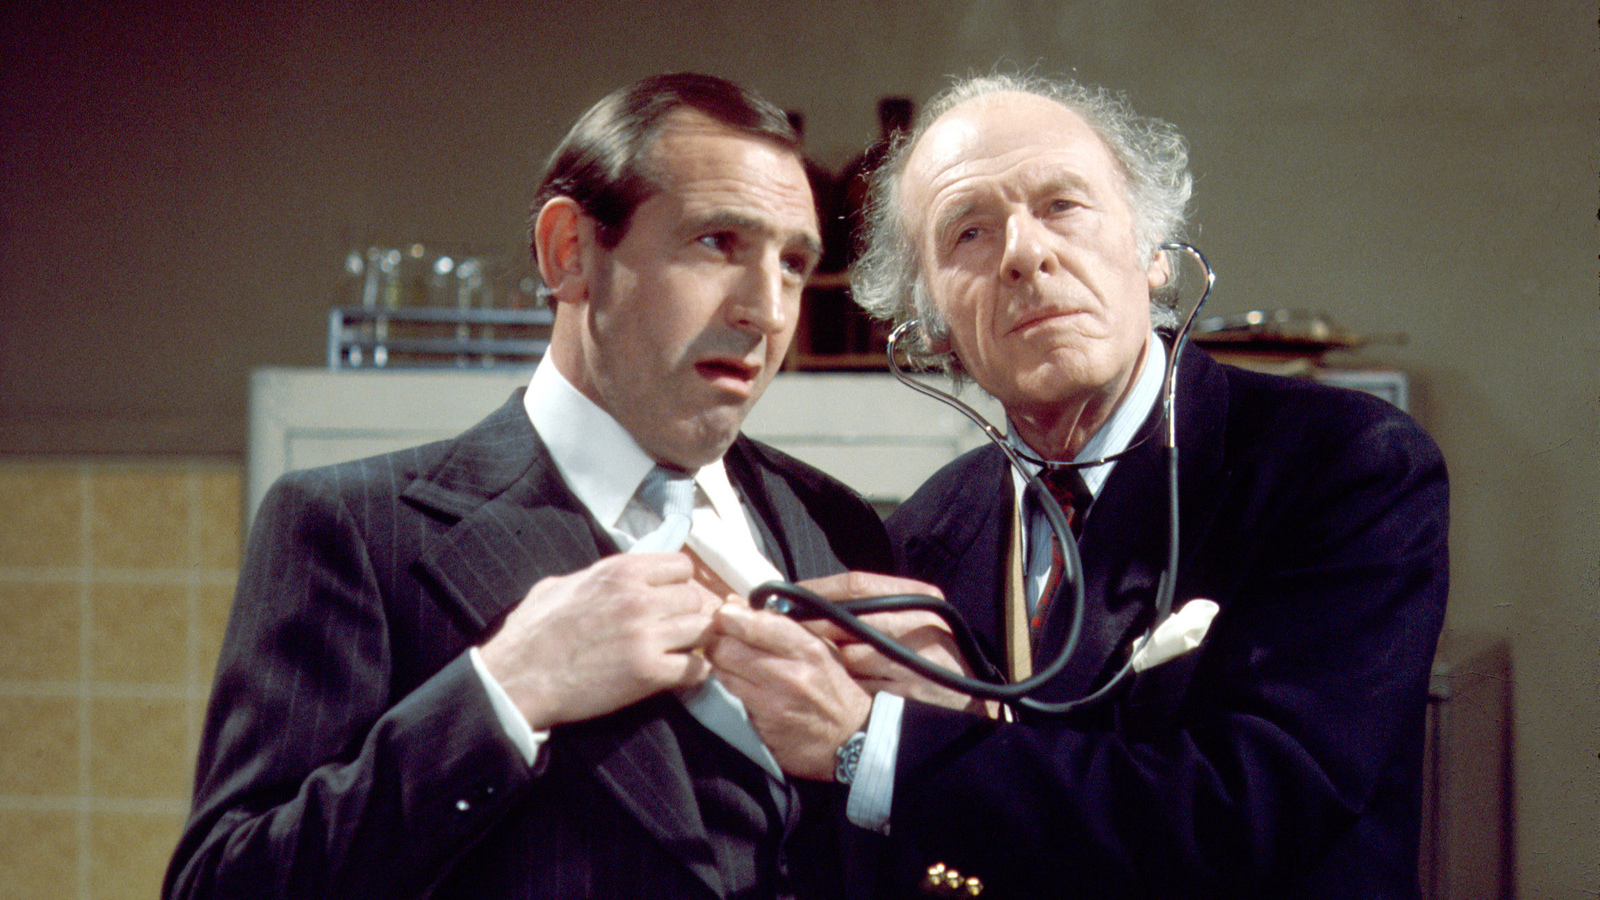 A picture showing Reginald Perrin and Doc Morrissey